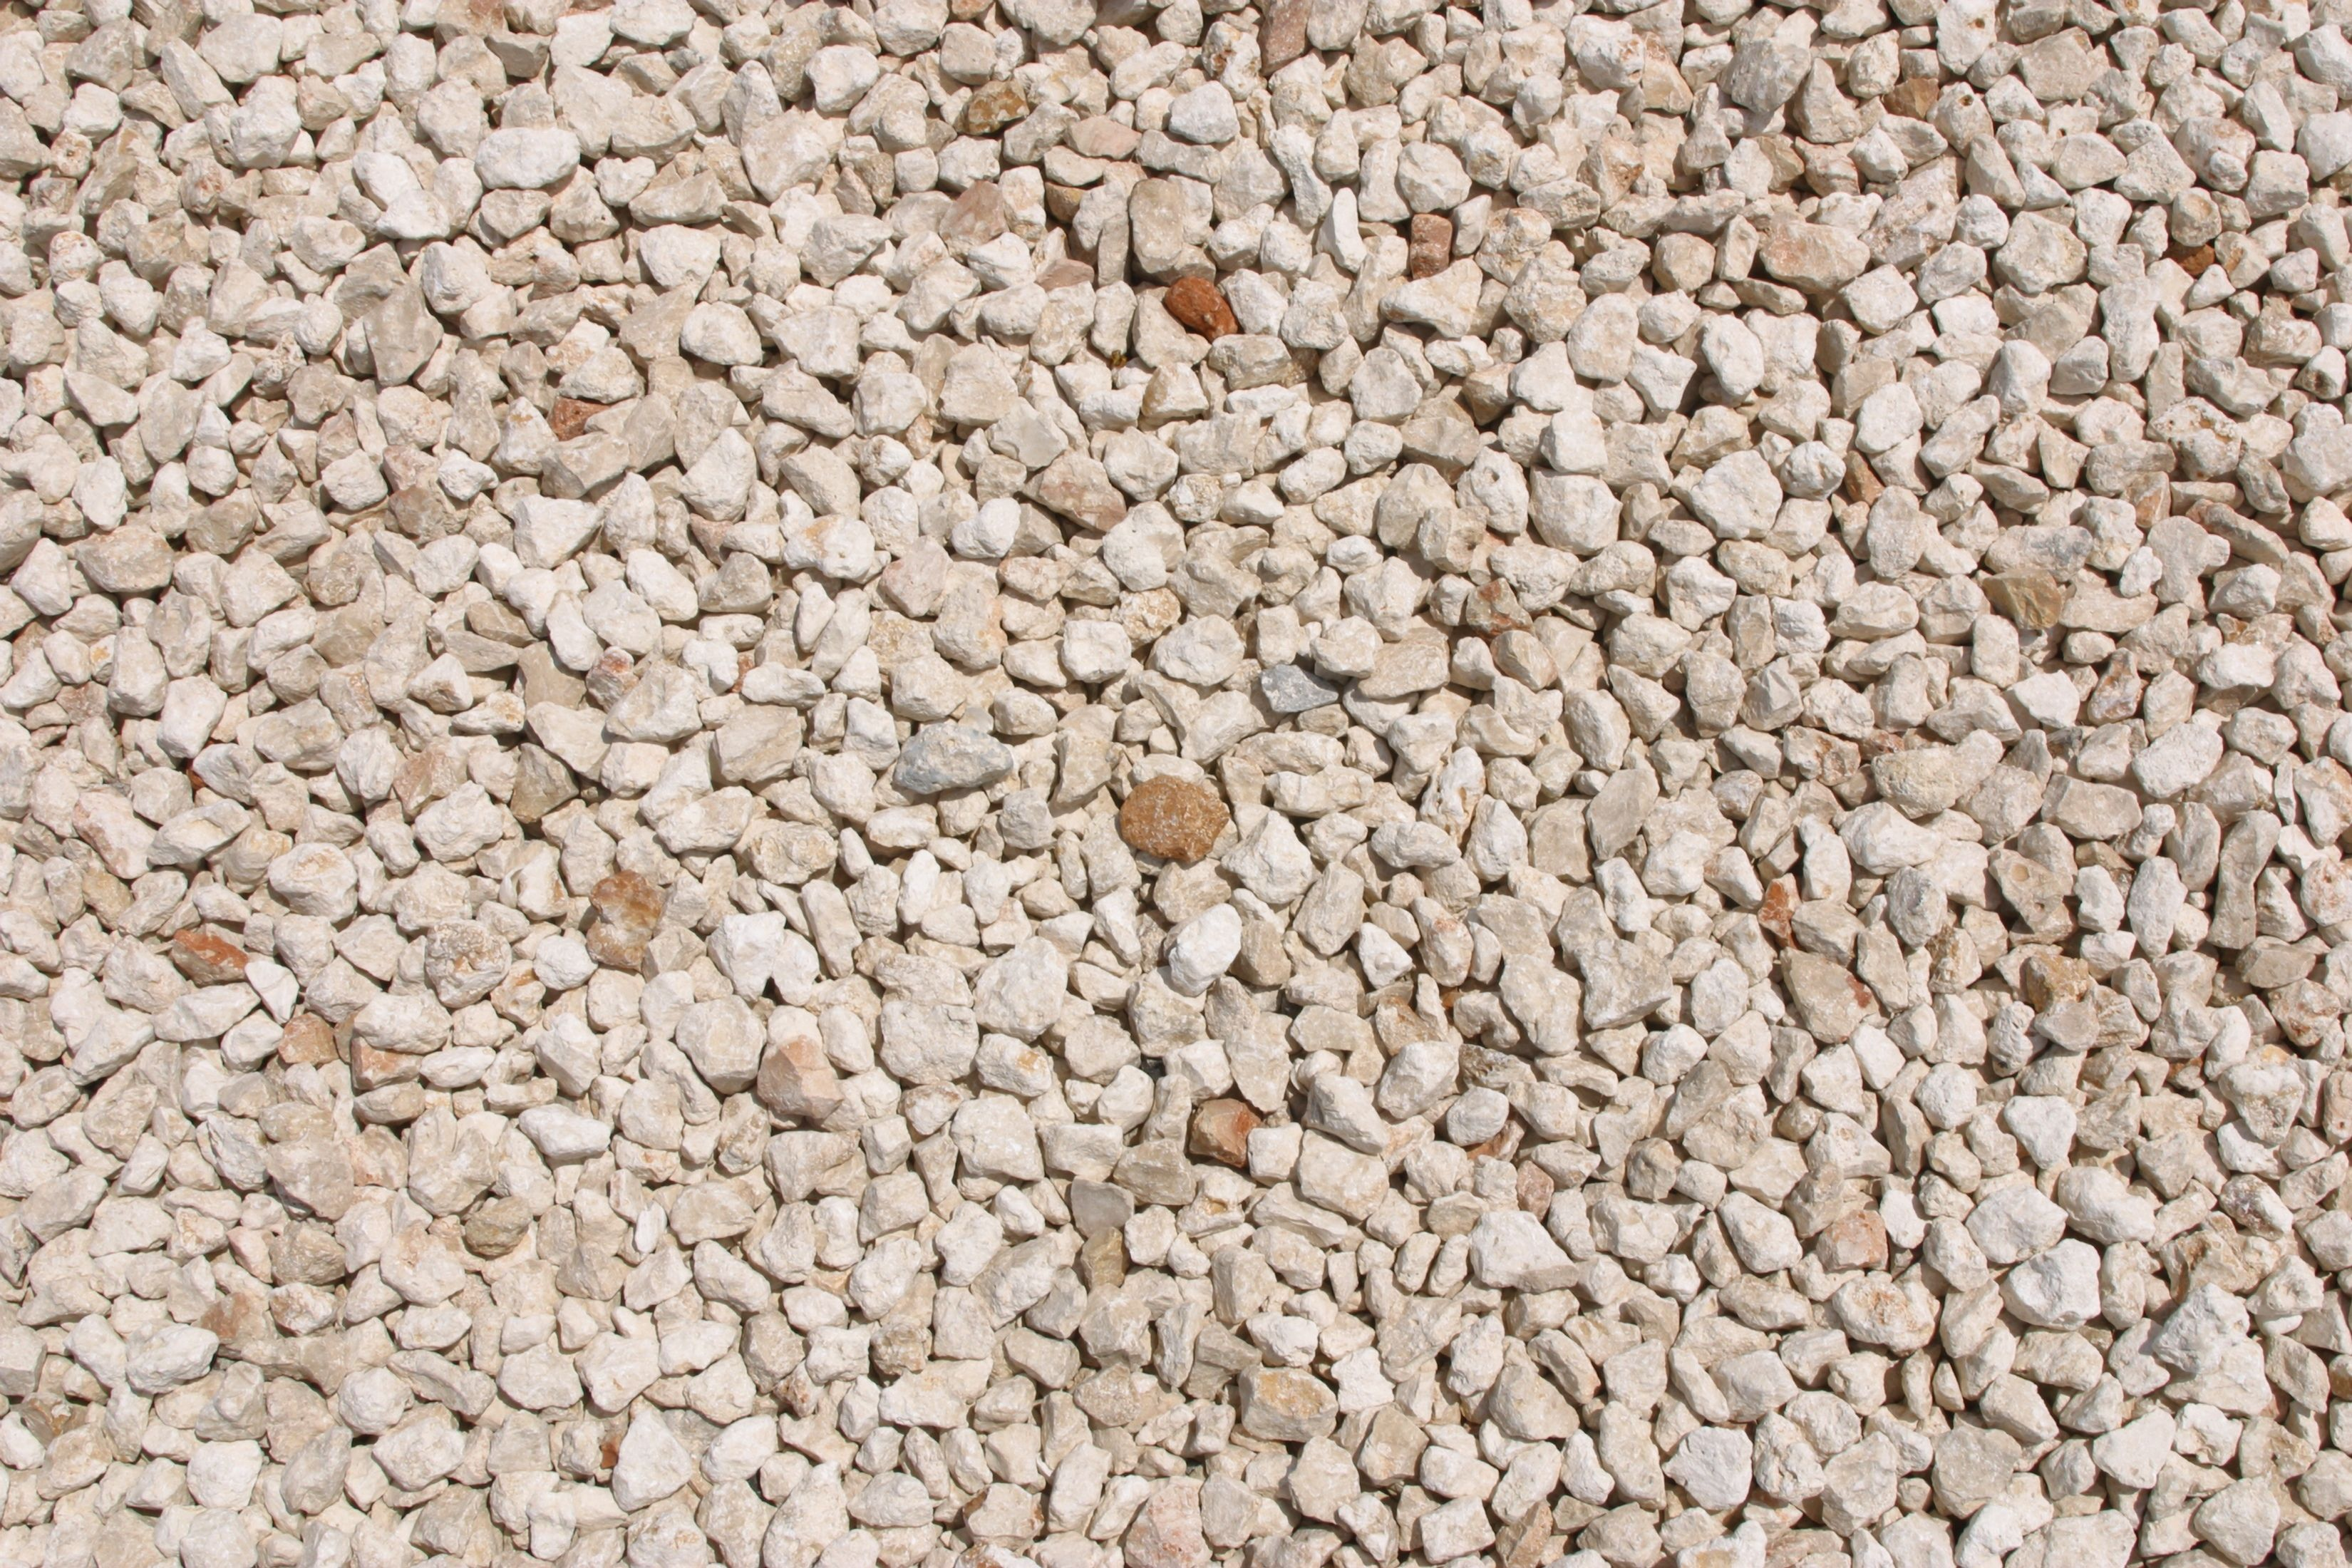 How To Apply Pea Gravel Using Chip Seal Gravel Patio Pea Gravel